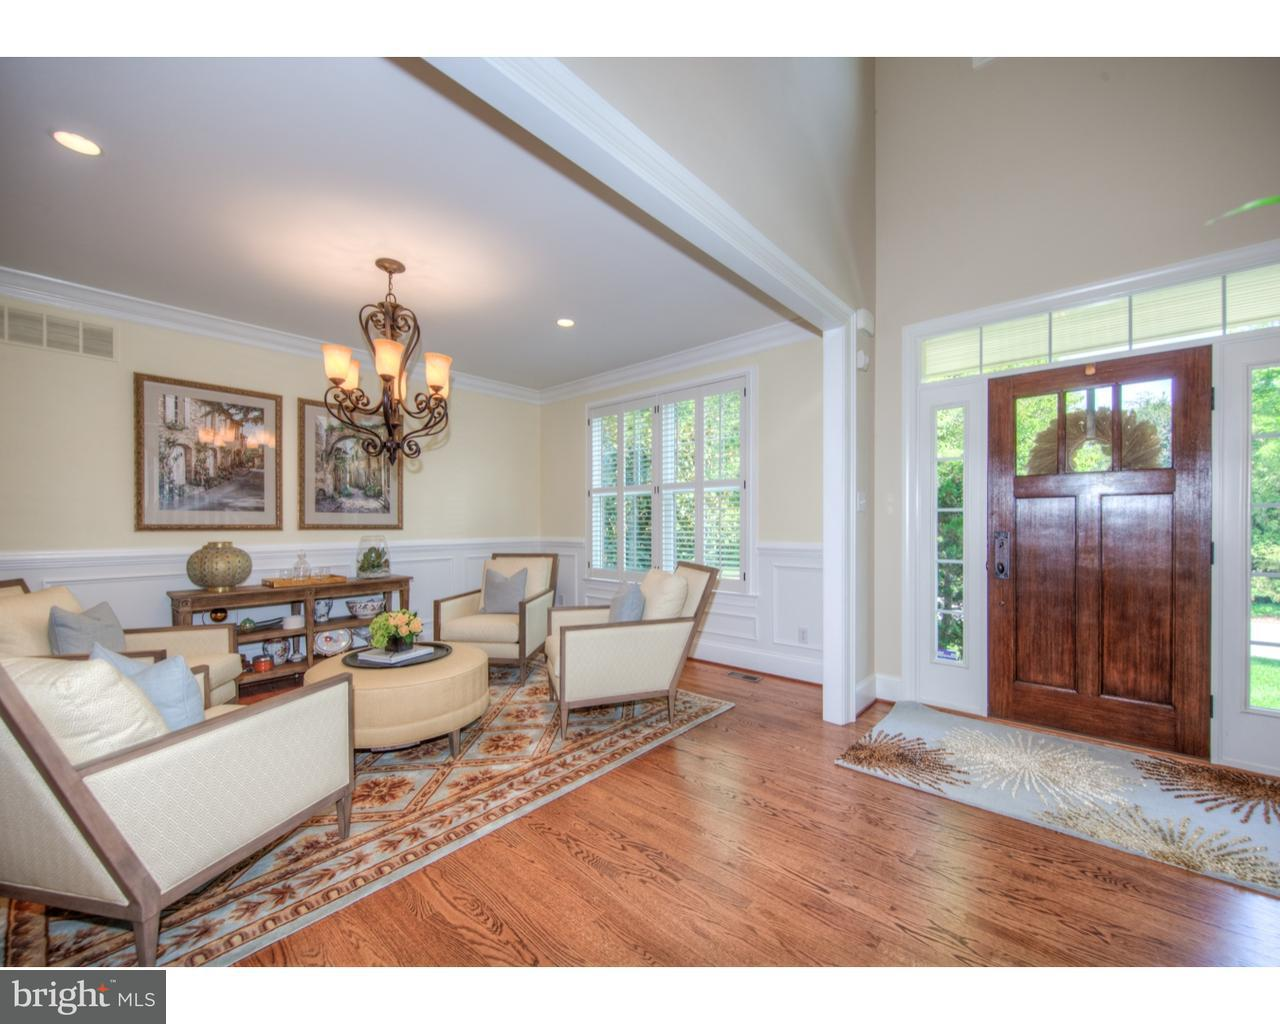 112 TRAYMORE LN, ROSE VALLEY - Listed at $689,900, ROSE VALLEY